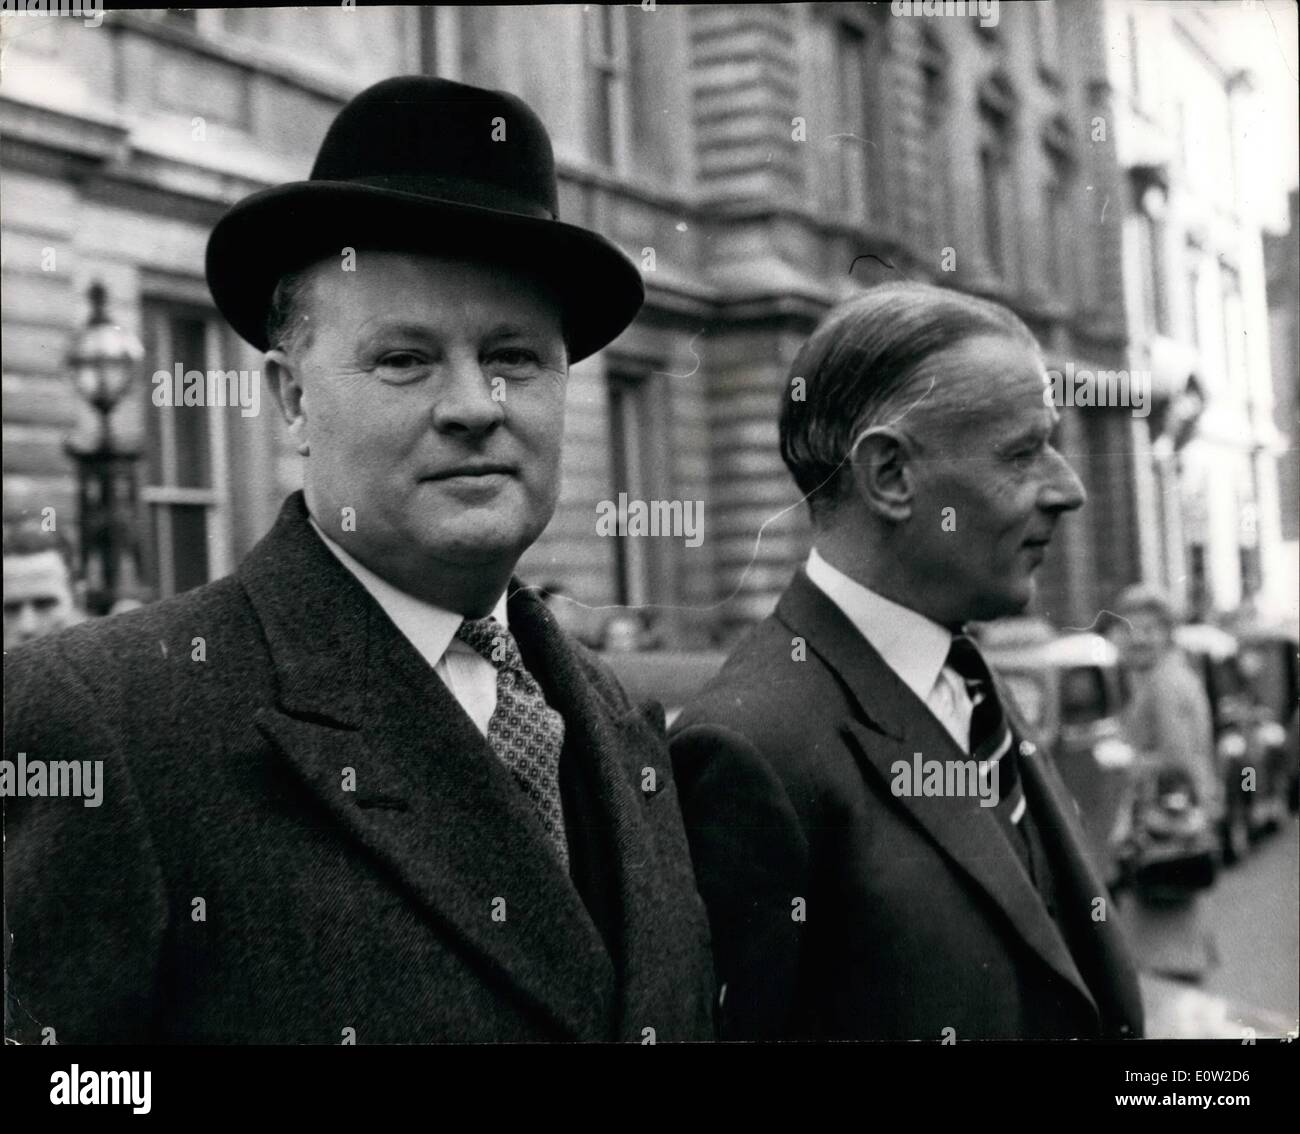 Feb. 02, 1961 - Spy charge case continues. Naval experts give evidence.: The Hearing continued at Bow Street yesterday in which - Stock Image